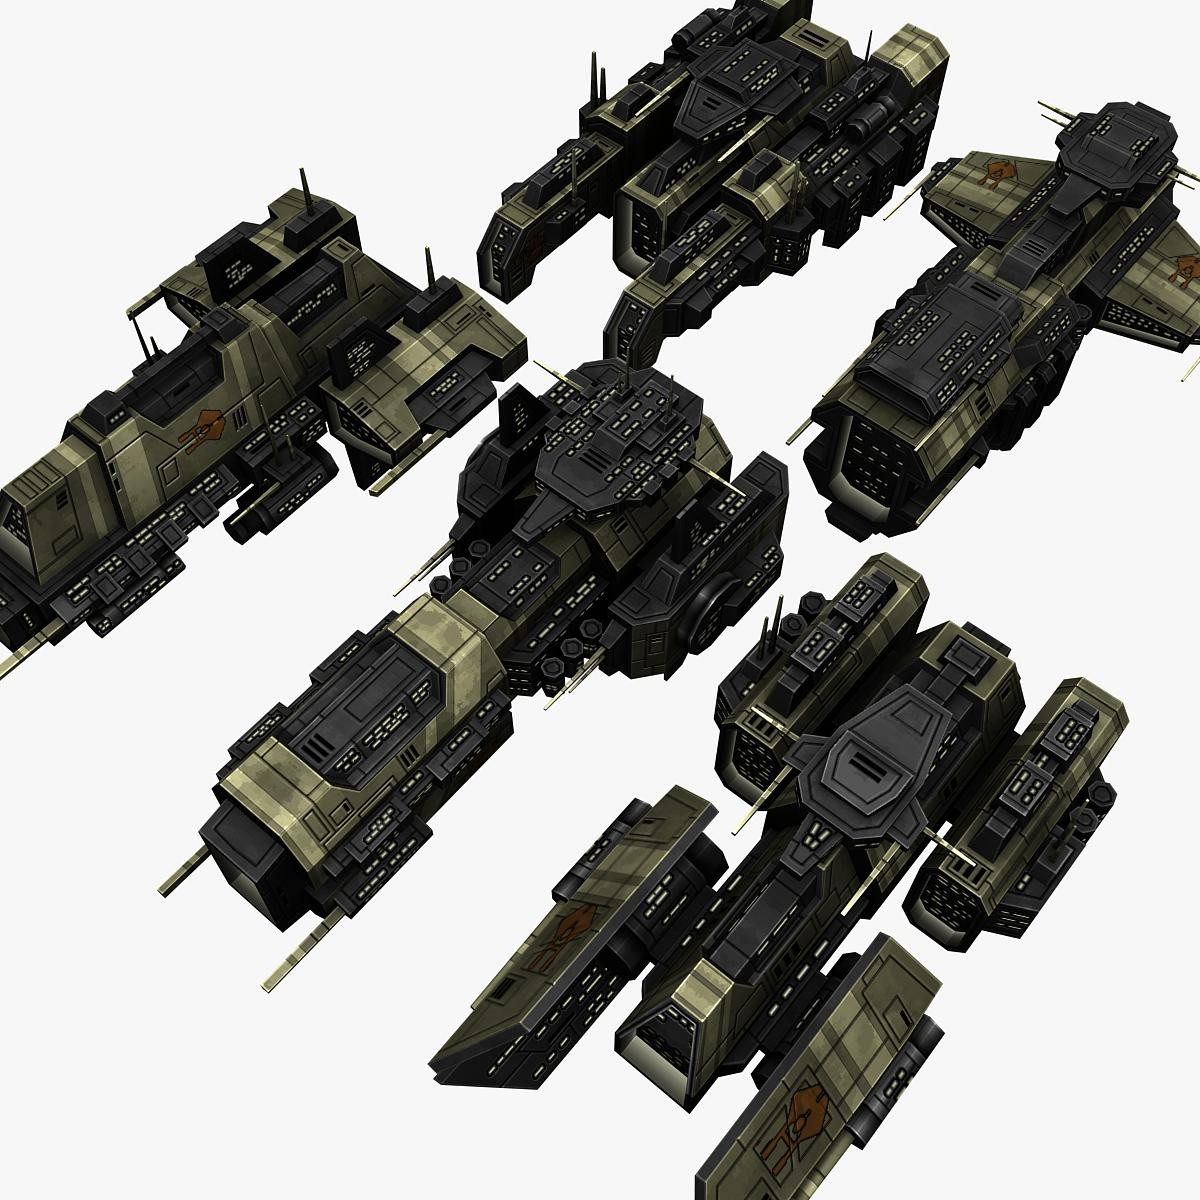 5_battleship_destroyers_preview_0.jpg